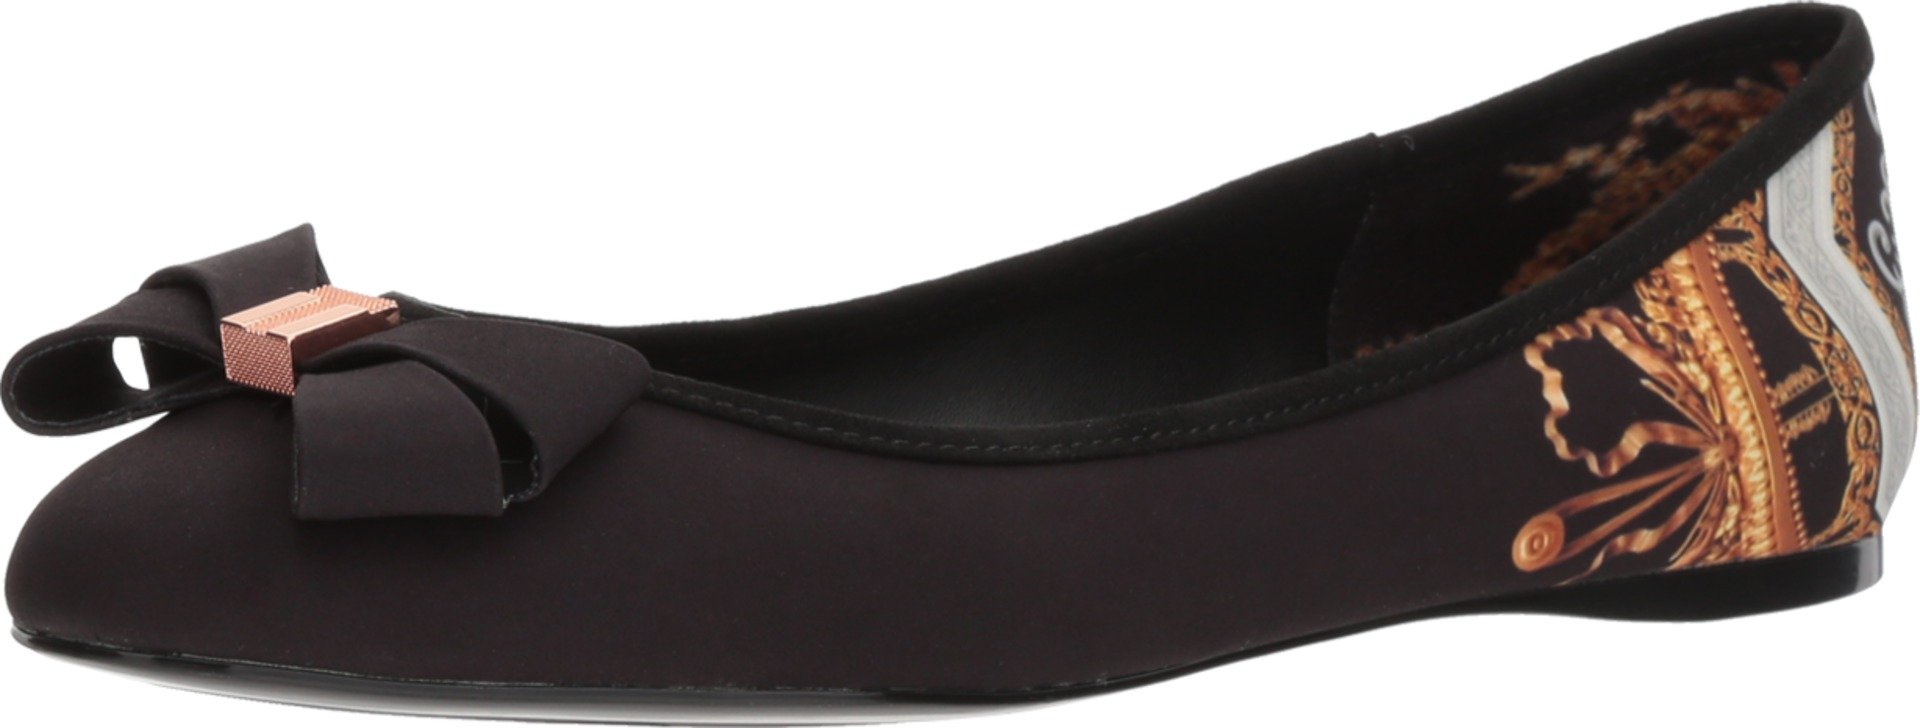 Ted Baker Women's Immep 2 Ballet Flat, Black, 8.5 Medium US